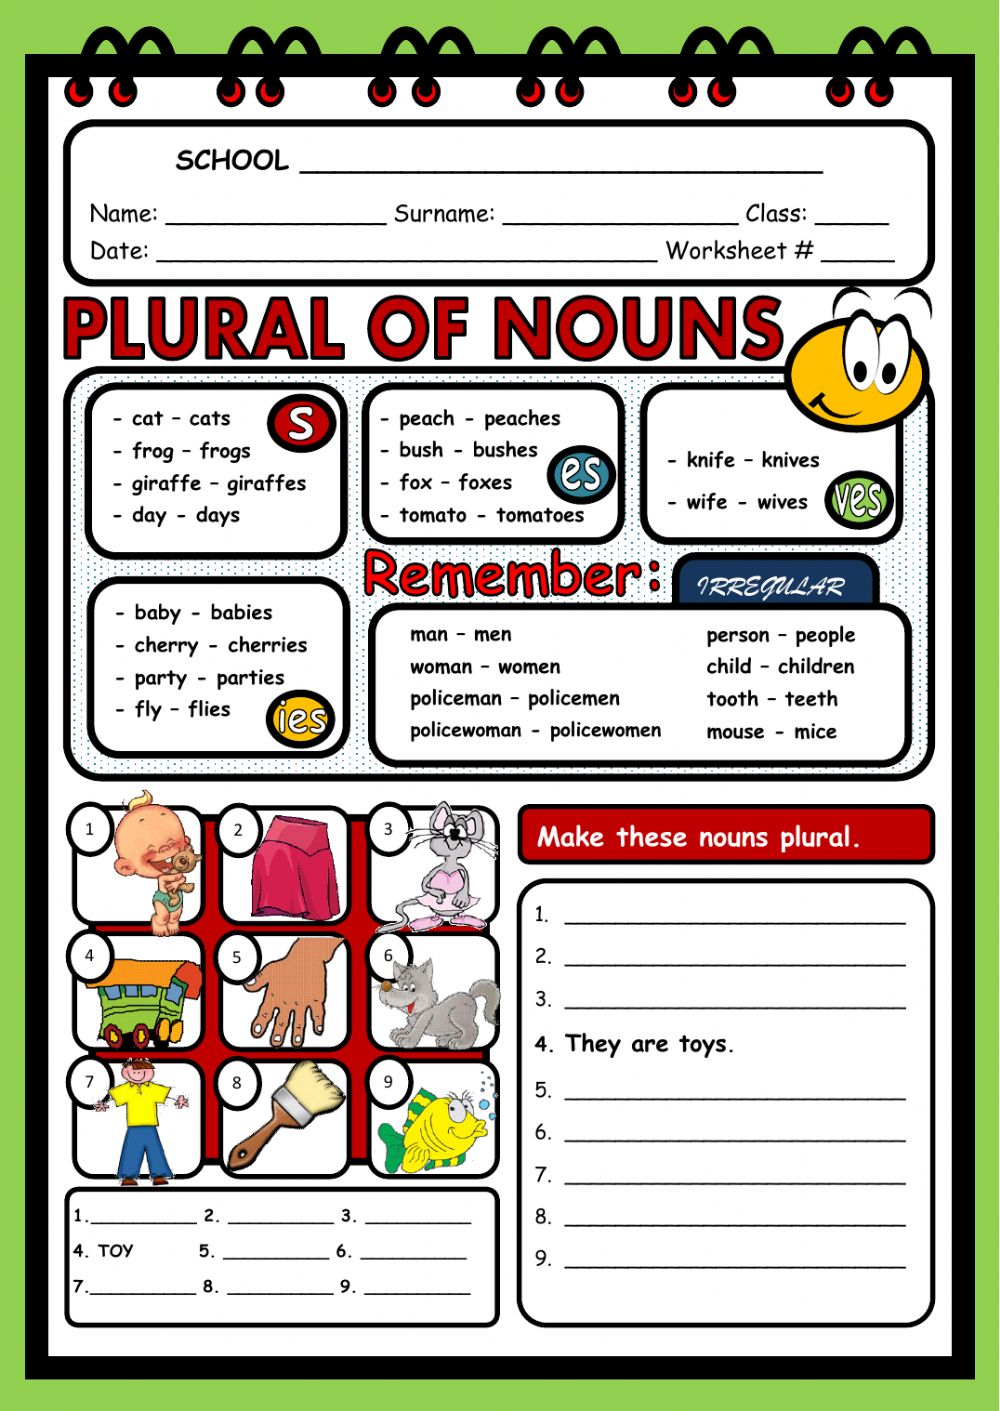 Workbooks plural rules worksheets : Plural of nouns - Interactive worksheet